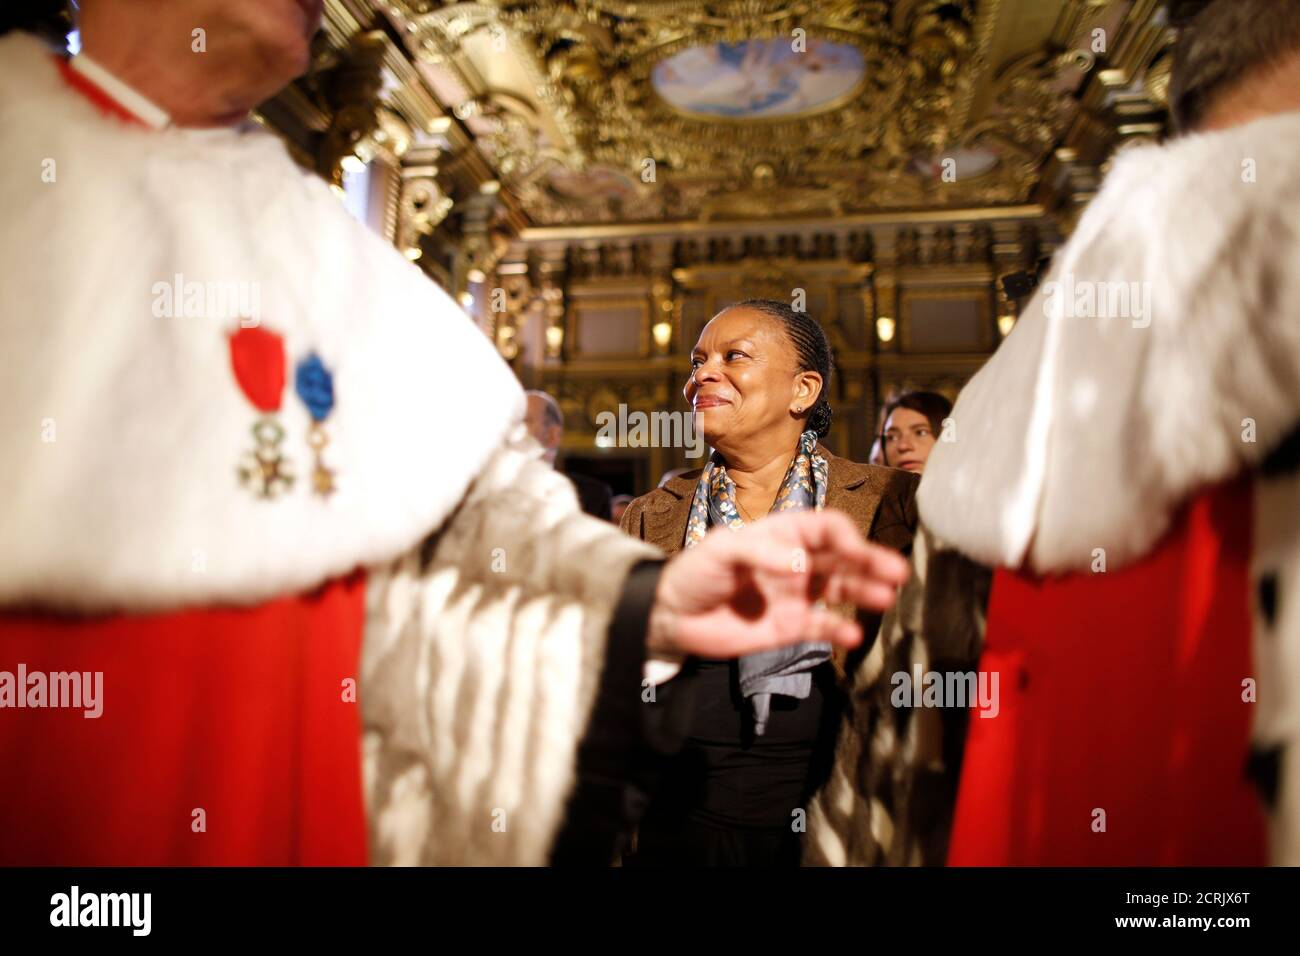 French Justice Minister Christiane Taubira (C) attends the traditional New Year ceremony which reopens the court of Cassation, France's highest judicial court, at Paris courthouse, France, January 14, 2016.    REUTERS/Charles Platiau Stock Photo